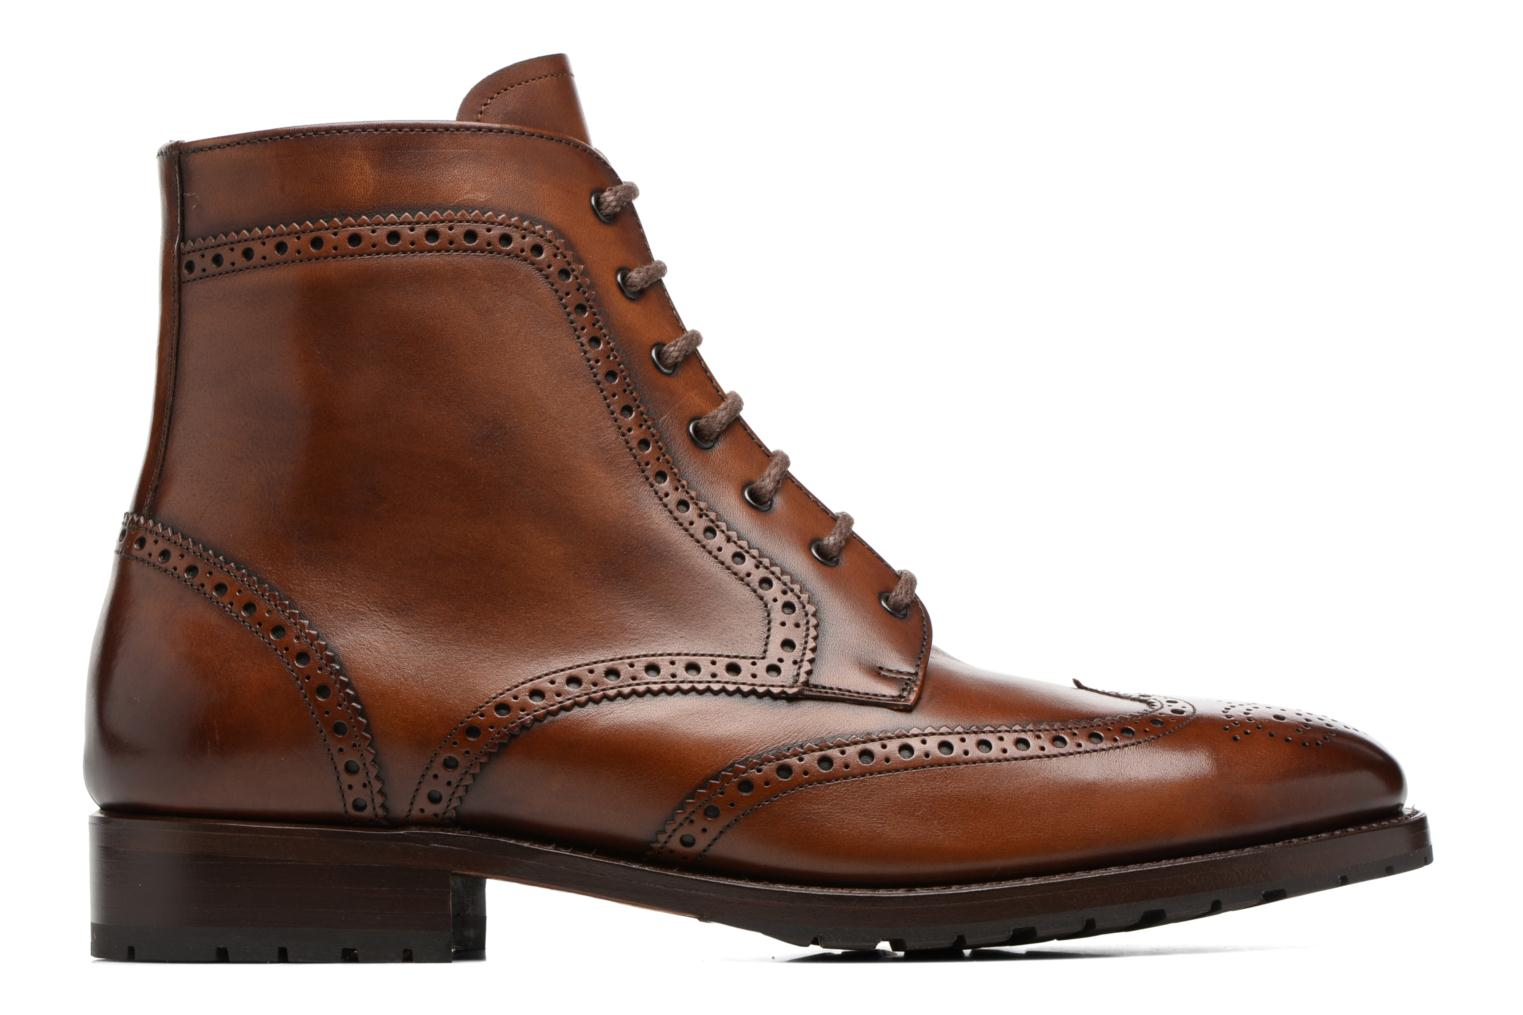 Bottines et boots Marvin&Co Luxe Westner - Goodyear Marron vue derrière